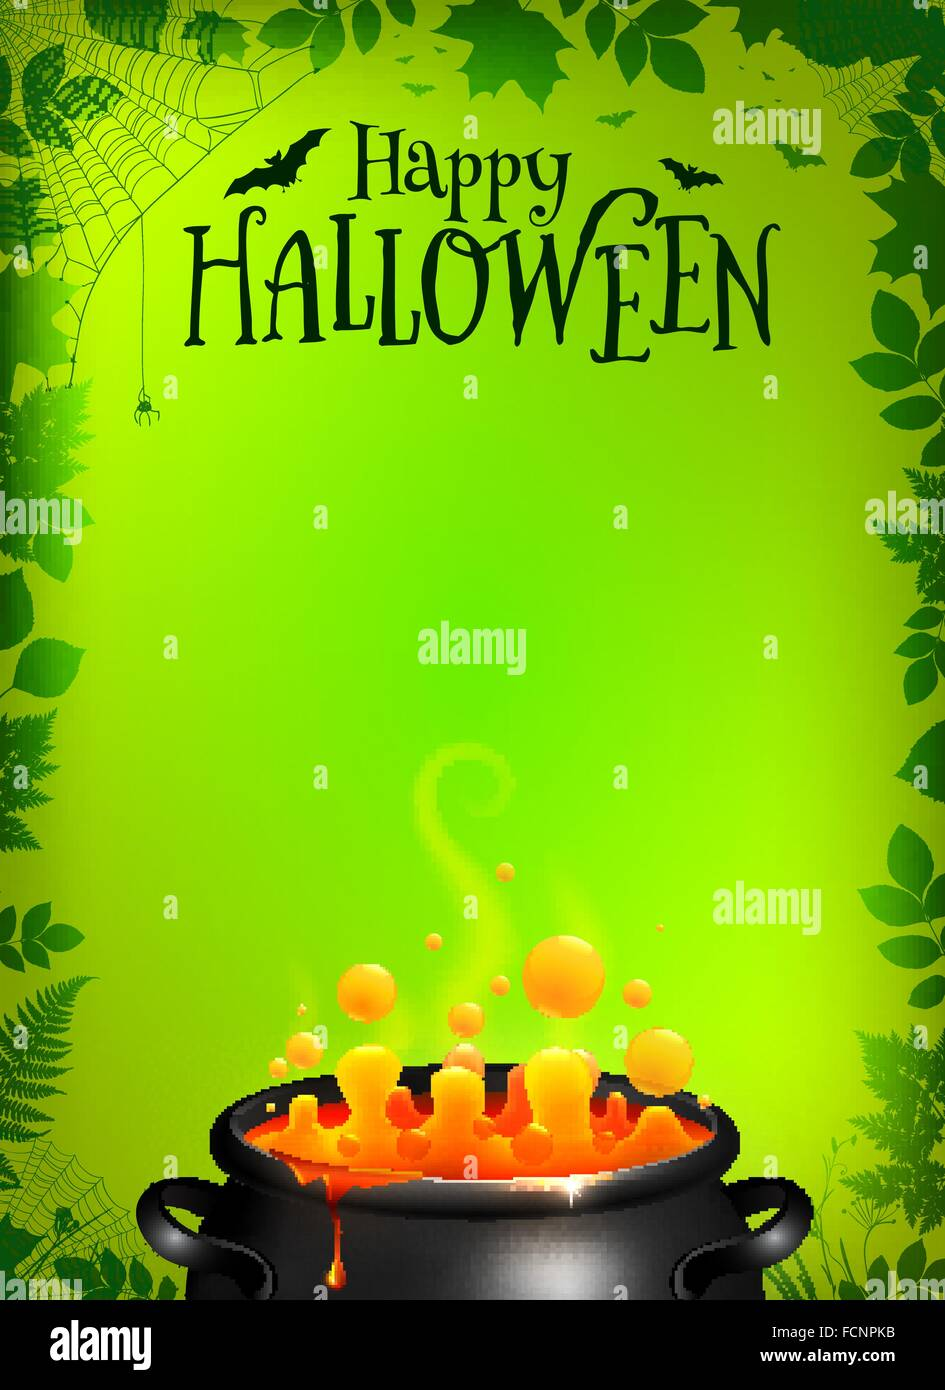 Green Halloween Poster Template With Orange Potion In Black Cauldron